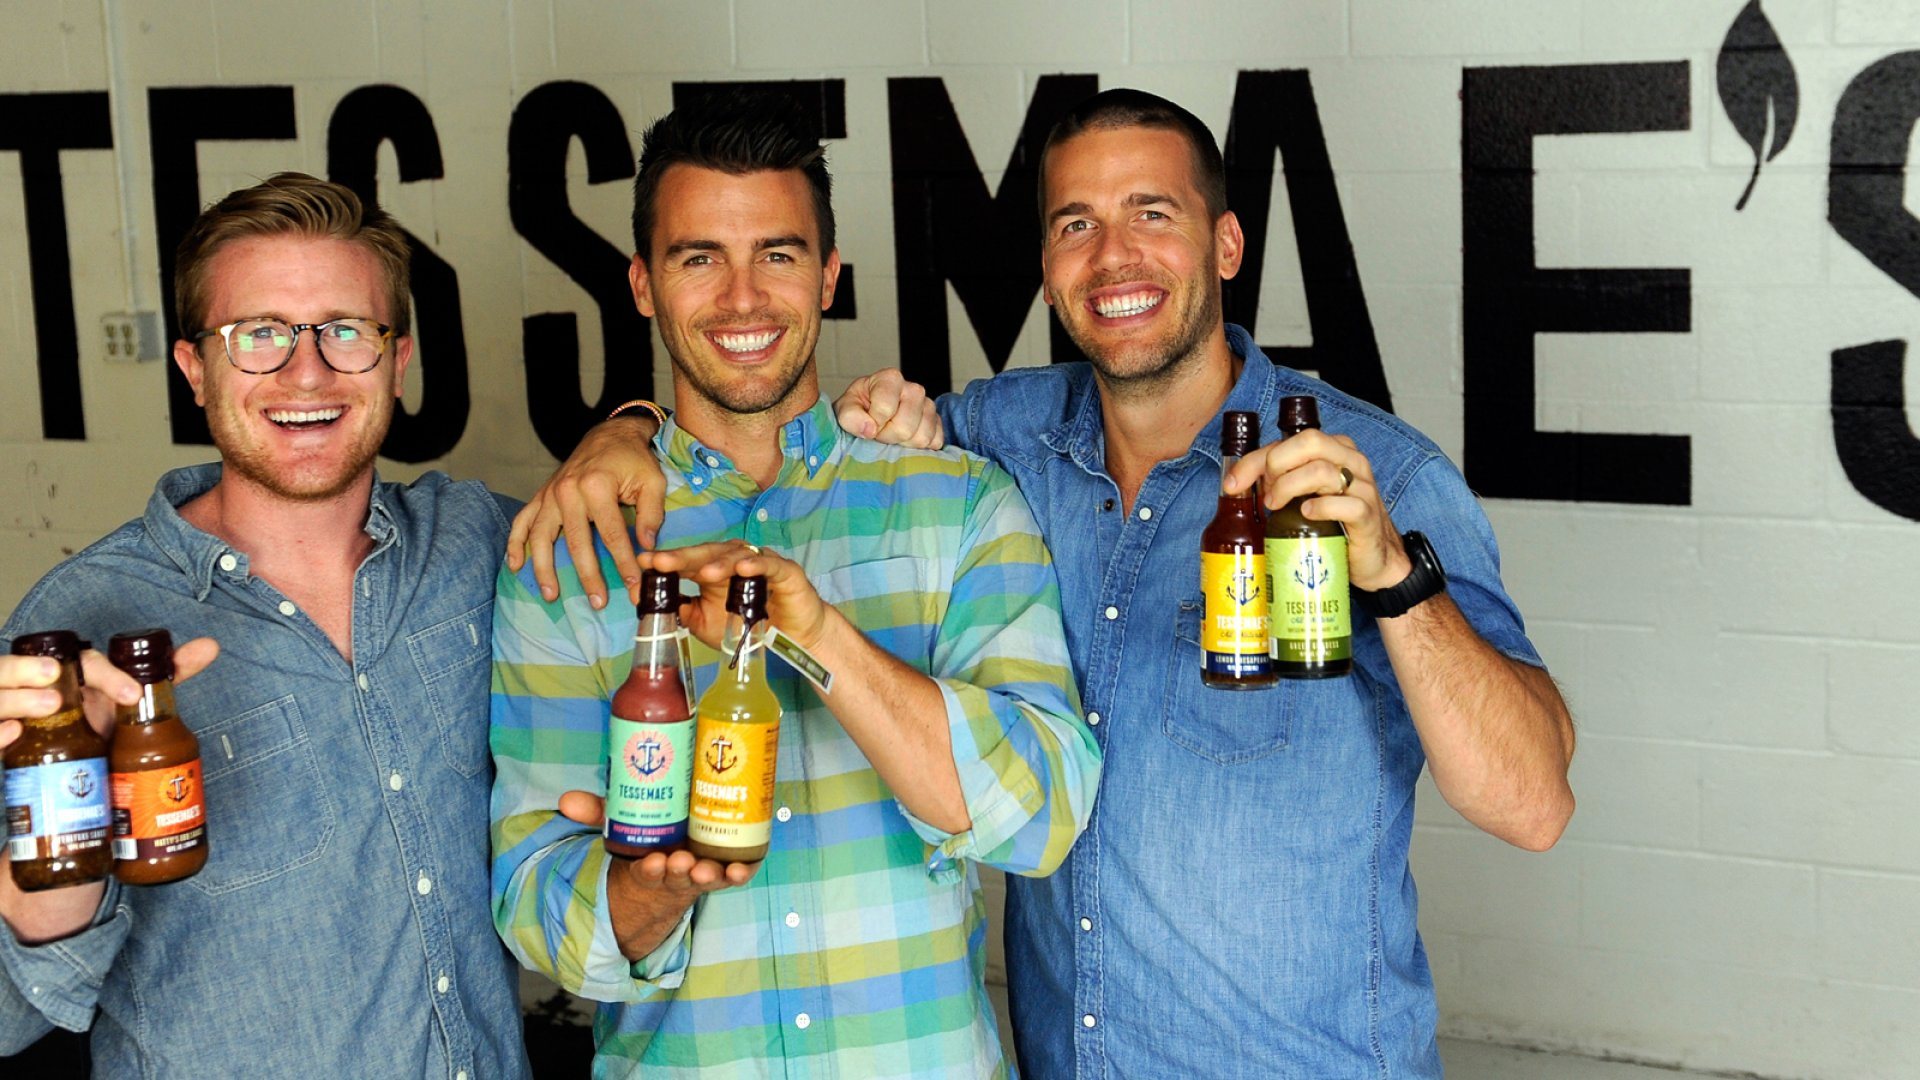 Matthew Vetter, Brian Vetter, and Greg Vetter are dressed for success. They took their mom's salad-dressing recipe and turned it into a multimillion-dollar business and a top seller at Whole Foods.